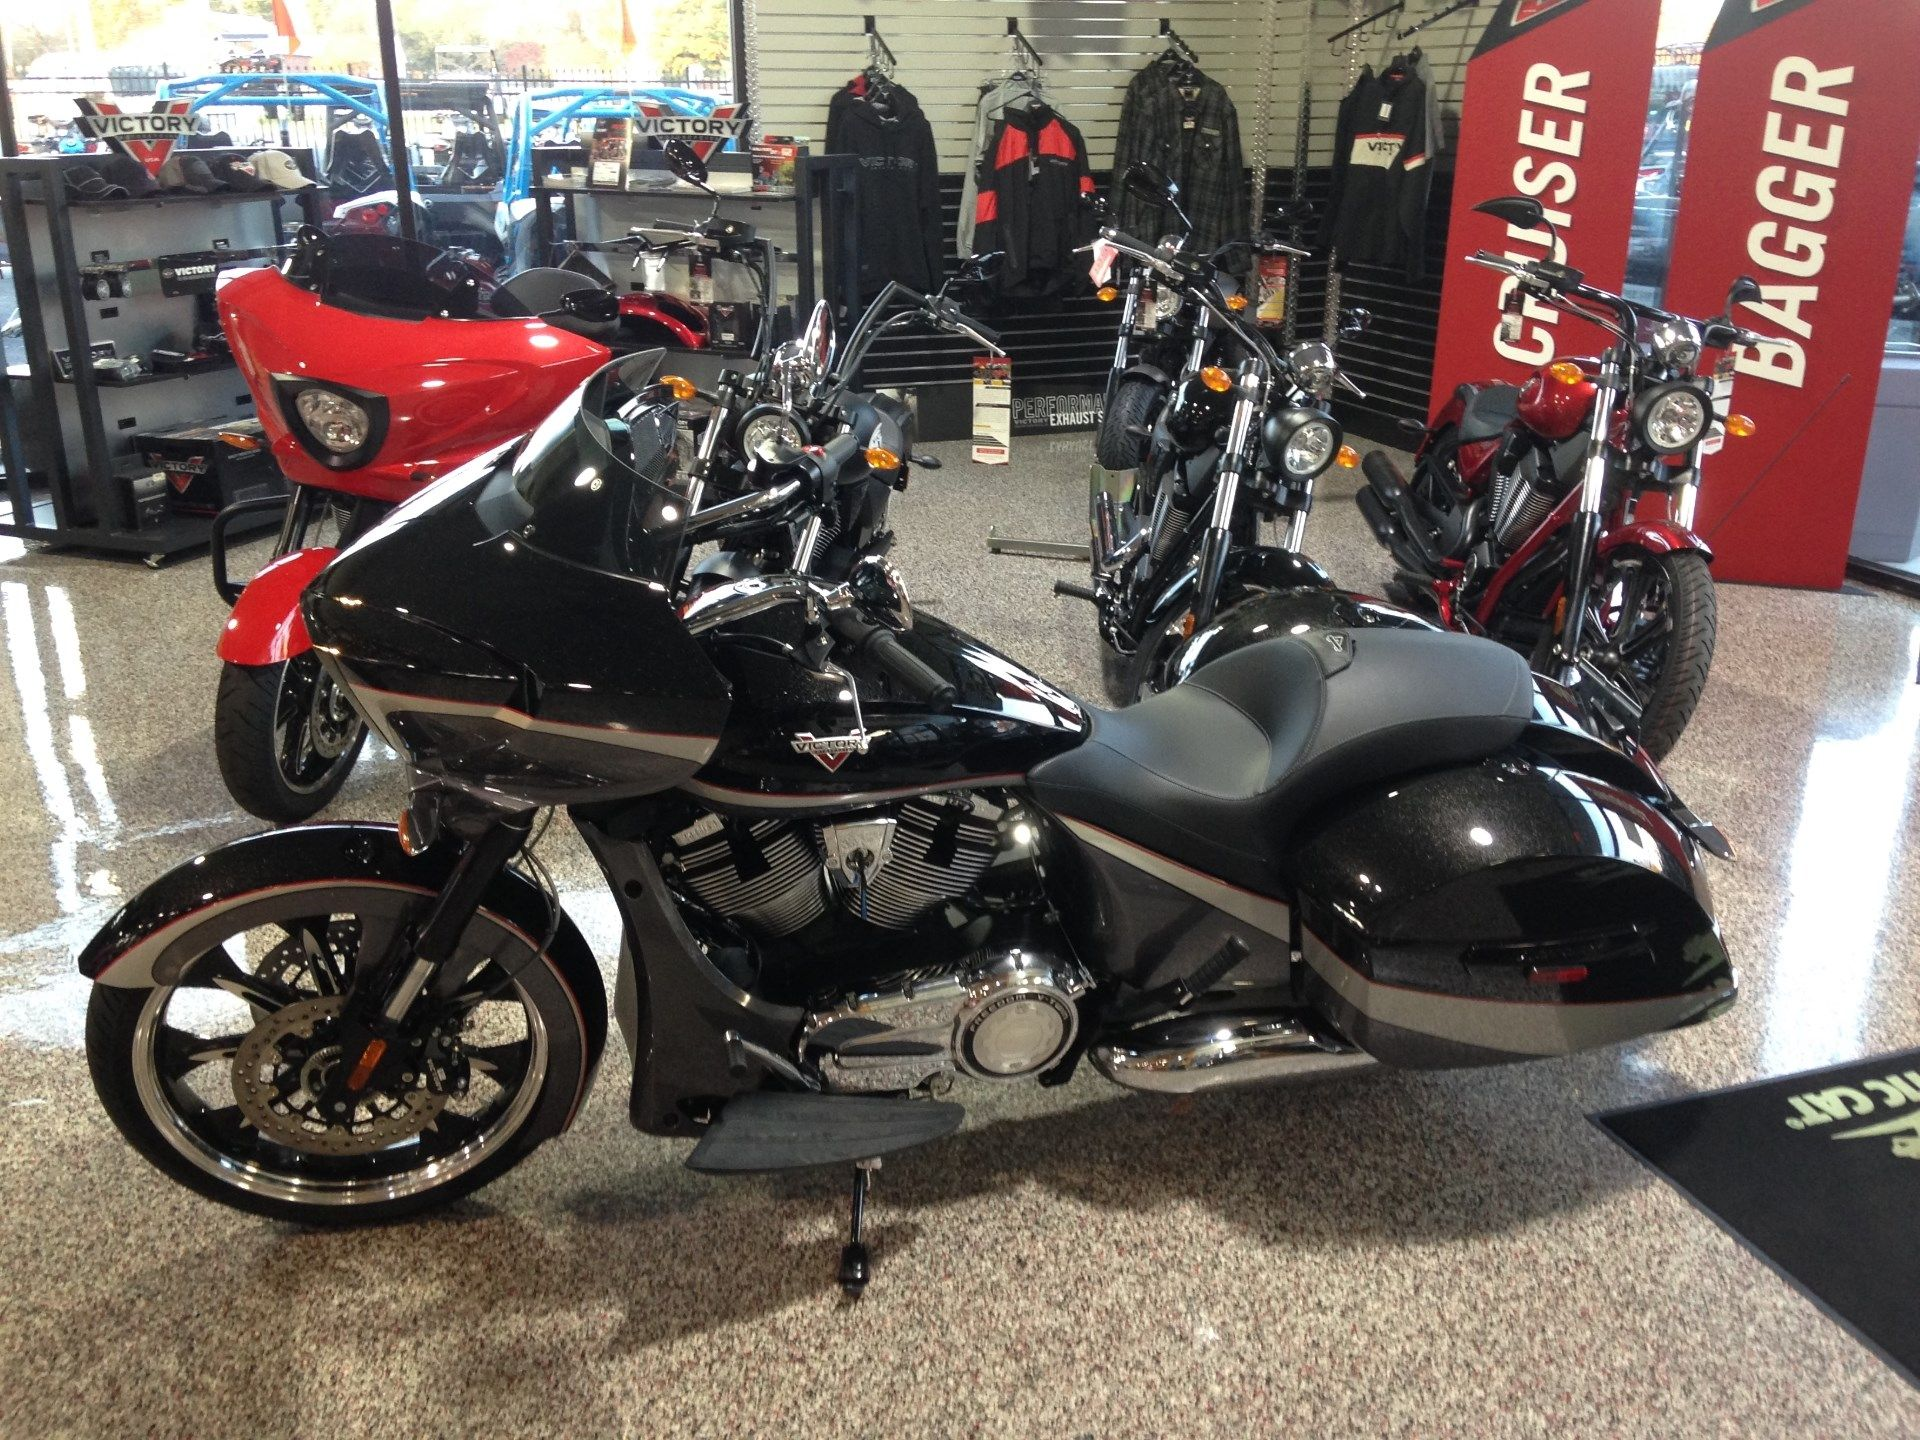 Honda Motorcycle Dealers In Goldsboro Nc Motorjdi Co